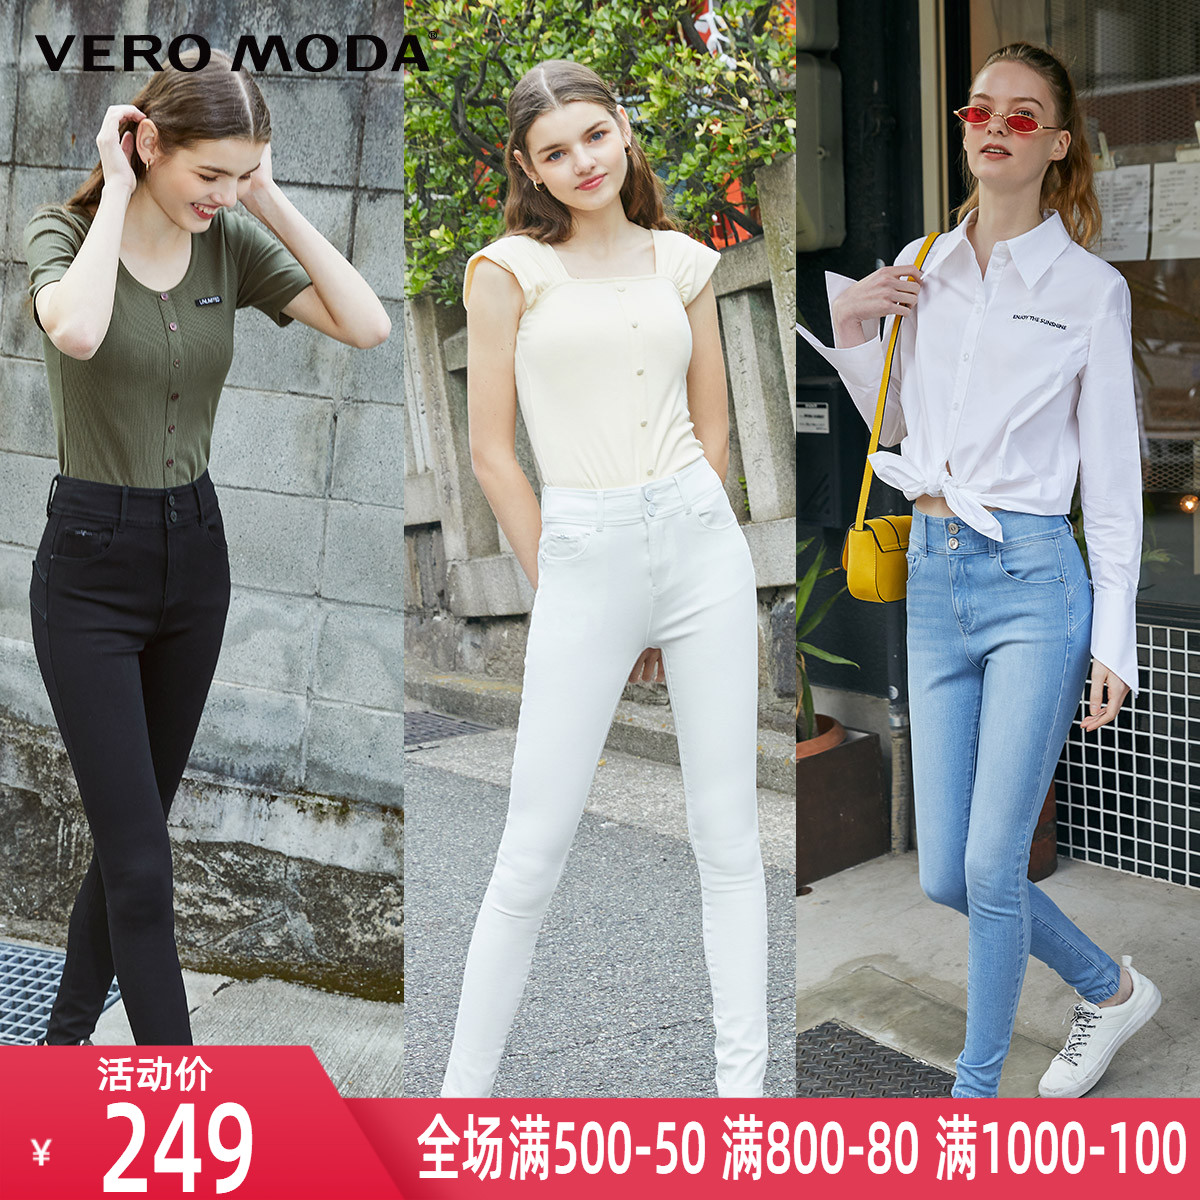 Vero moda2020 spring and summer new high waist tight nine point pencil small leg jeans for women 320149554